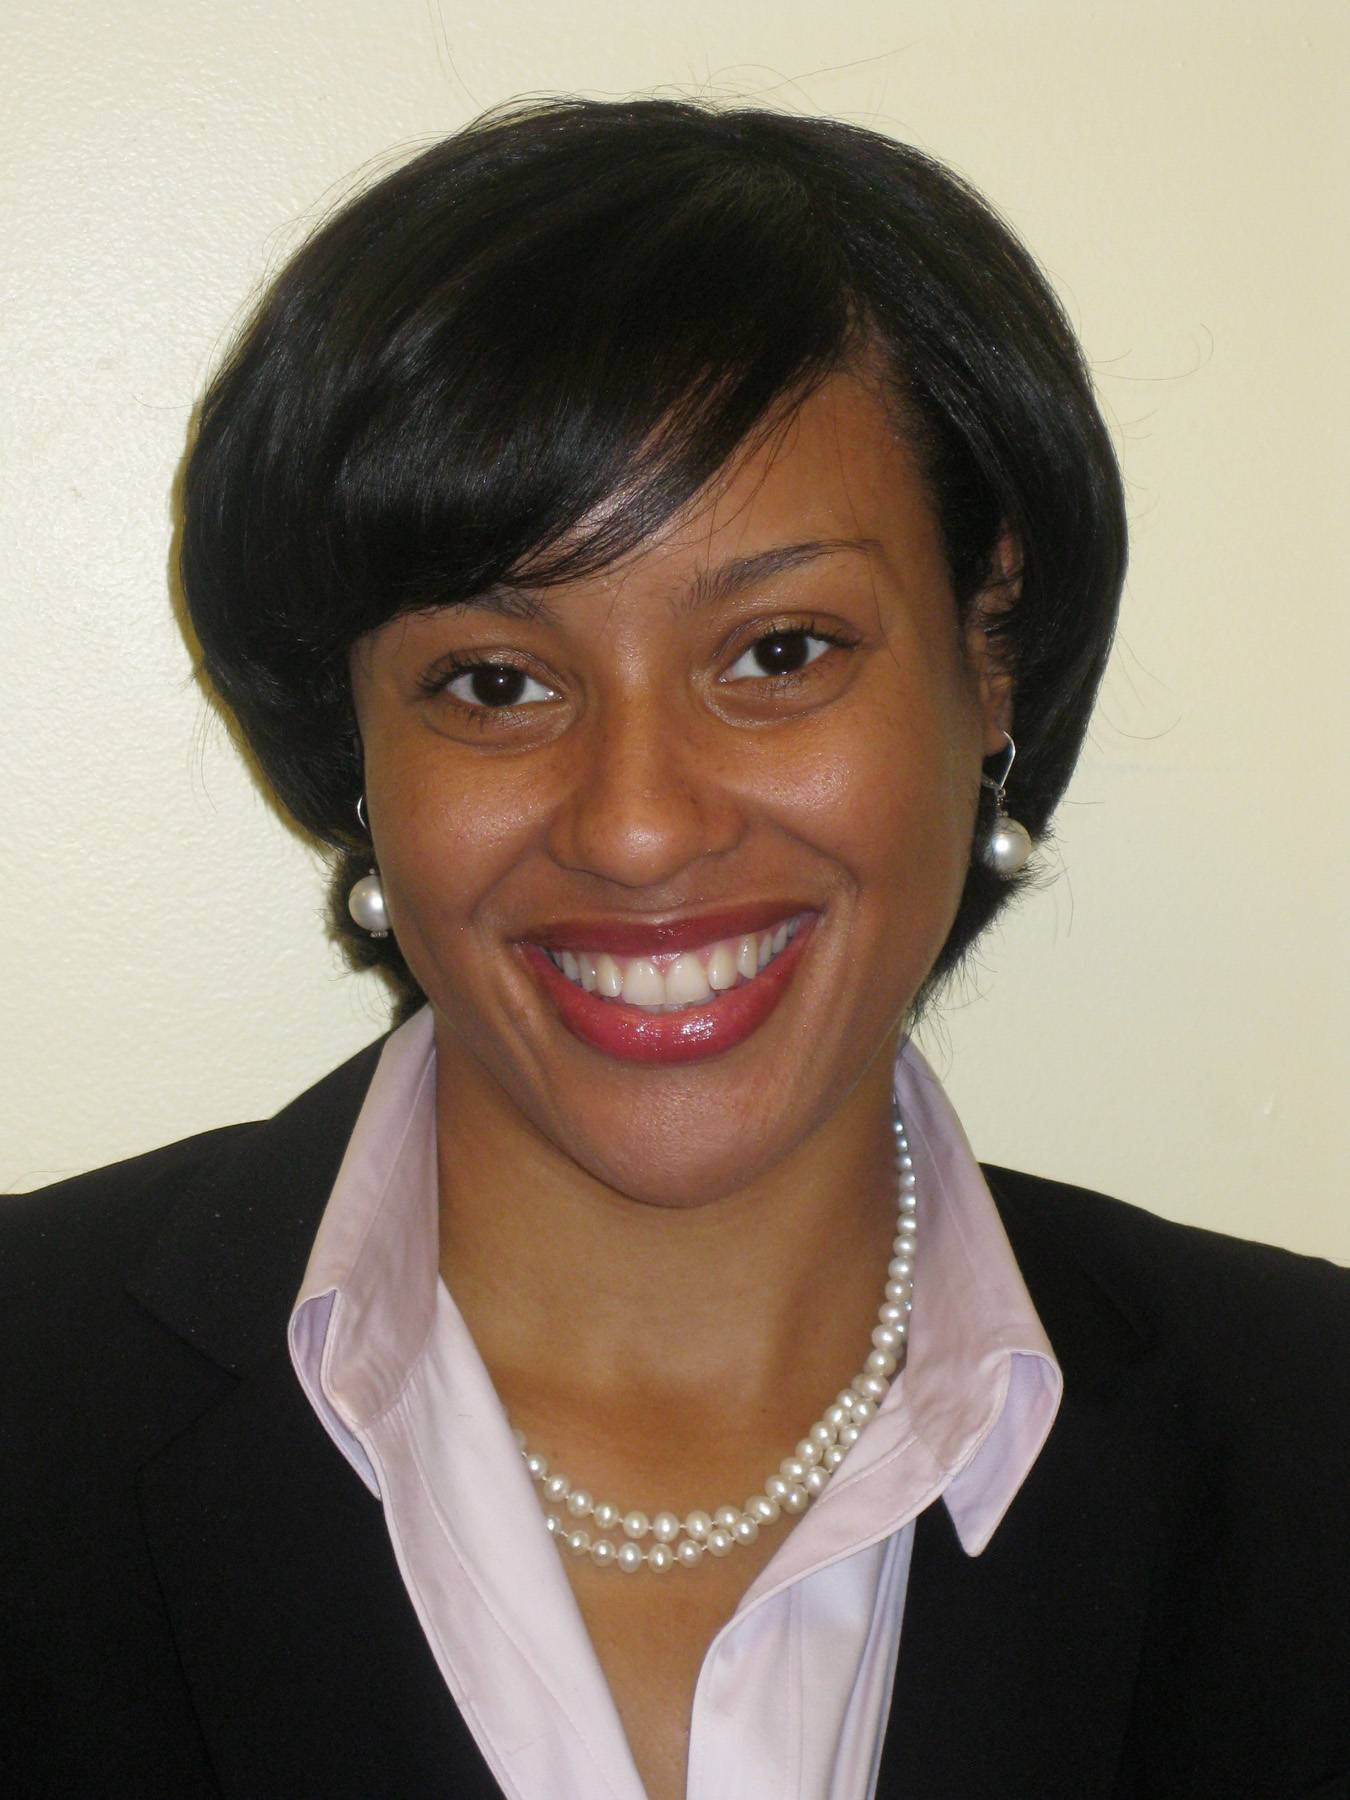 Melanie Roussell - Melanie Roussell has gone from Congressional Black Caucus Foundation fellow 10 years ago to national press secretary for the Democratic National Committee. The Louisiana native already is playing a crucial role in President Obama?s re-election effort.(Photo: Courtesy impactdc.org)